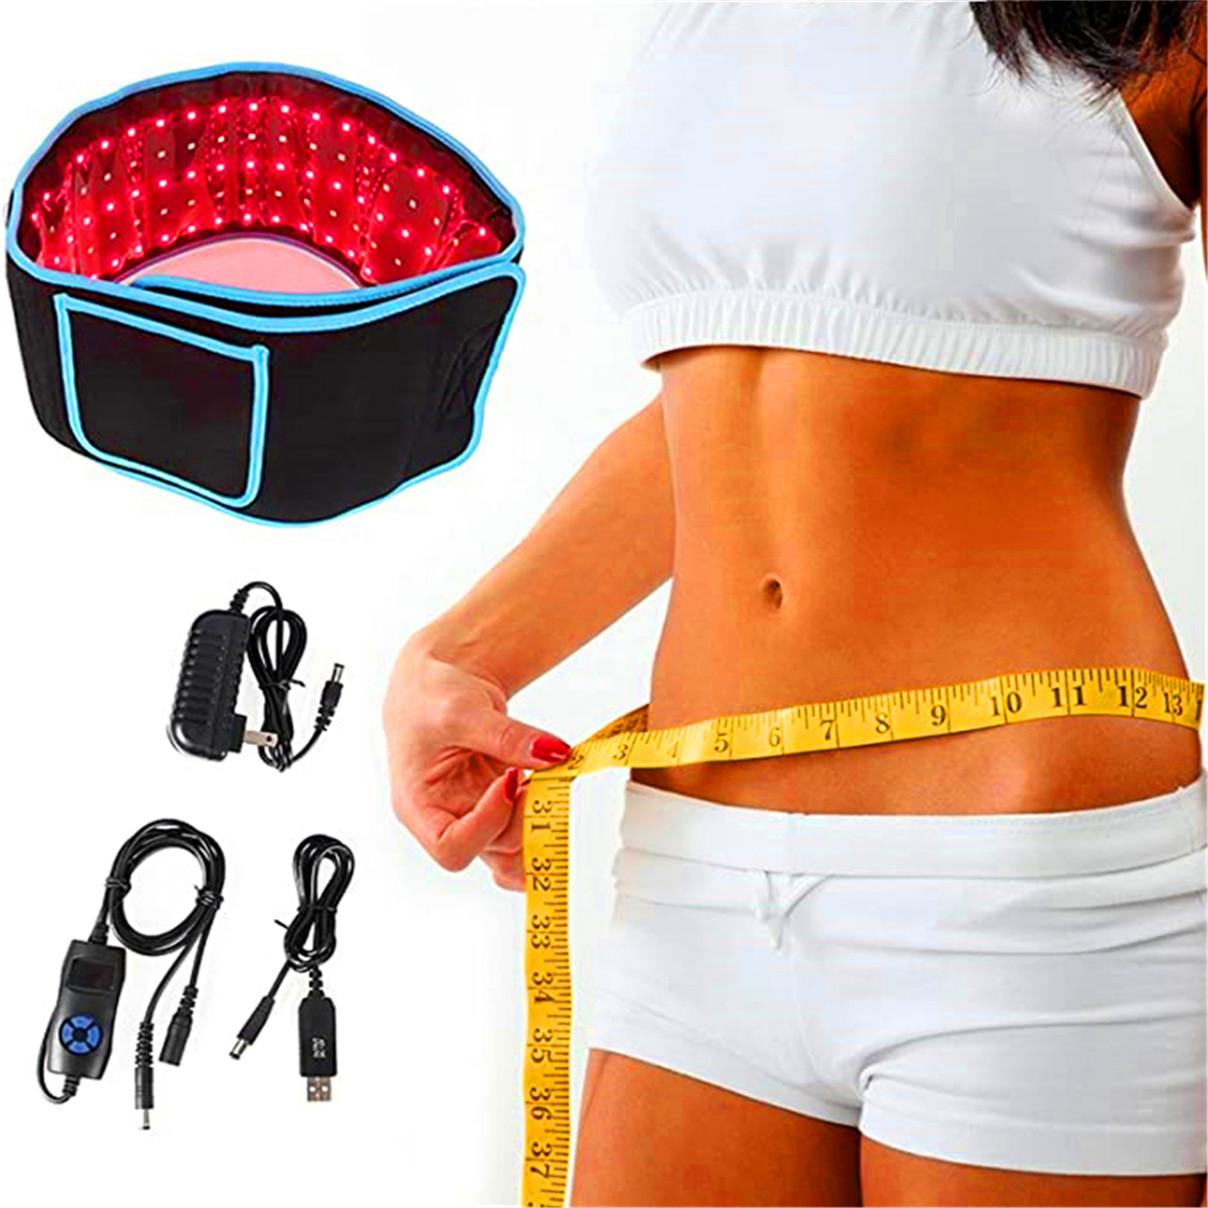 2021 Lighting 660nm Lose weight belt LED Red Lights and 850nm Near Infrared Light Therapy Devices Large Pads Belts Wearable Wrap for Body Pain